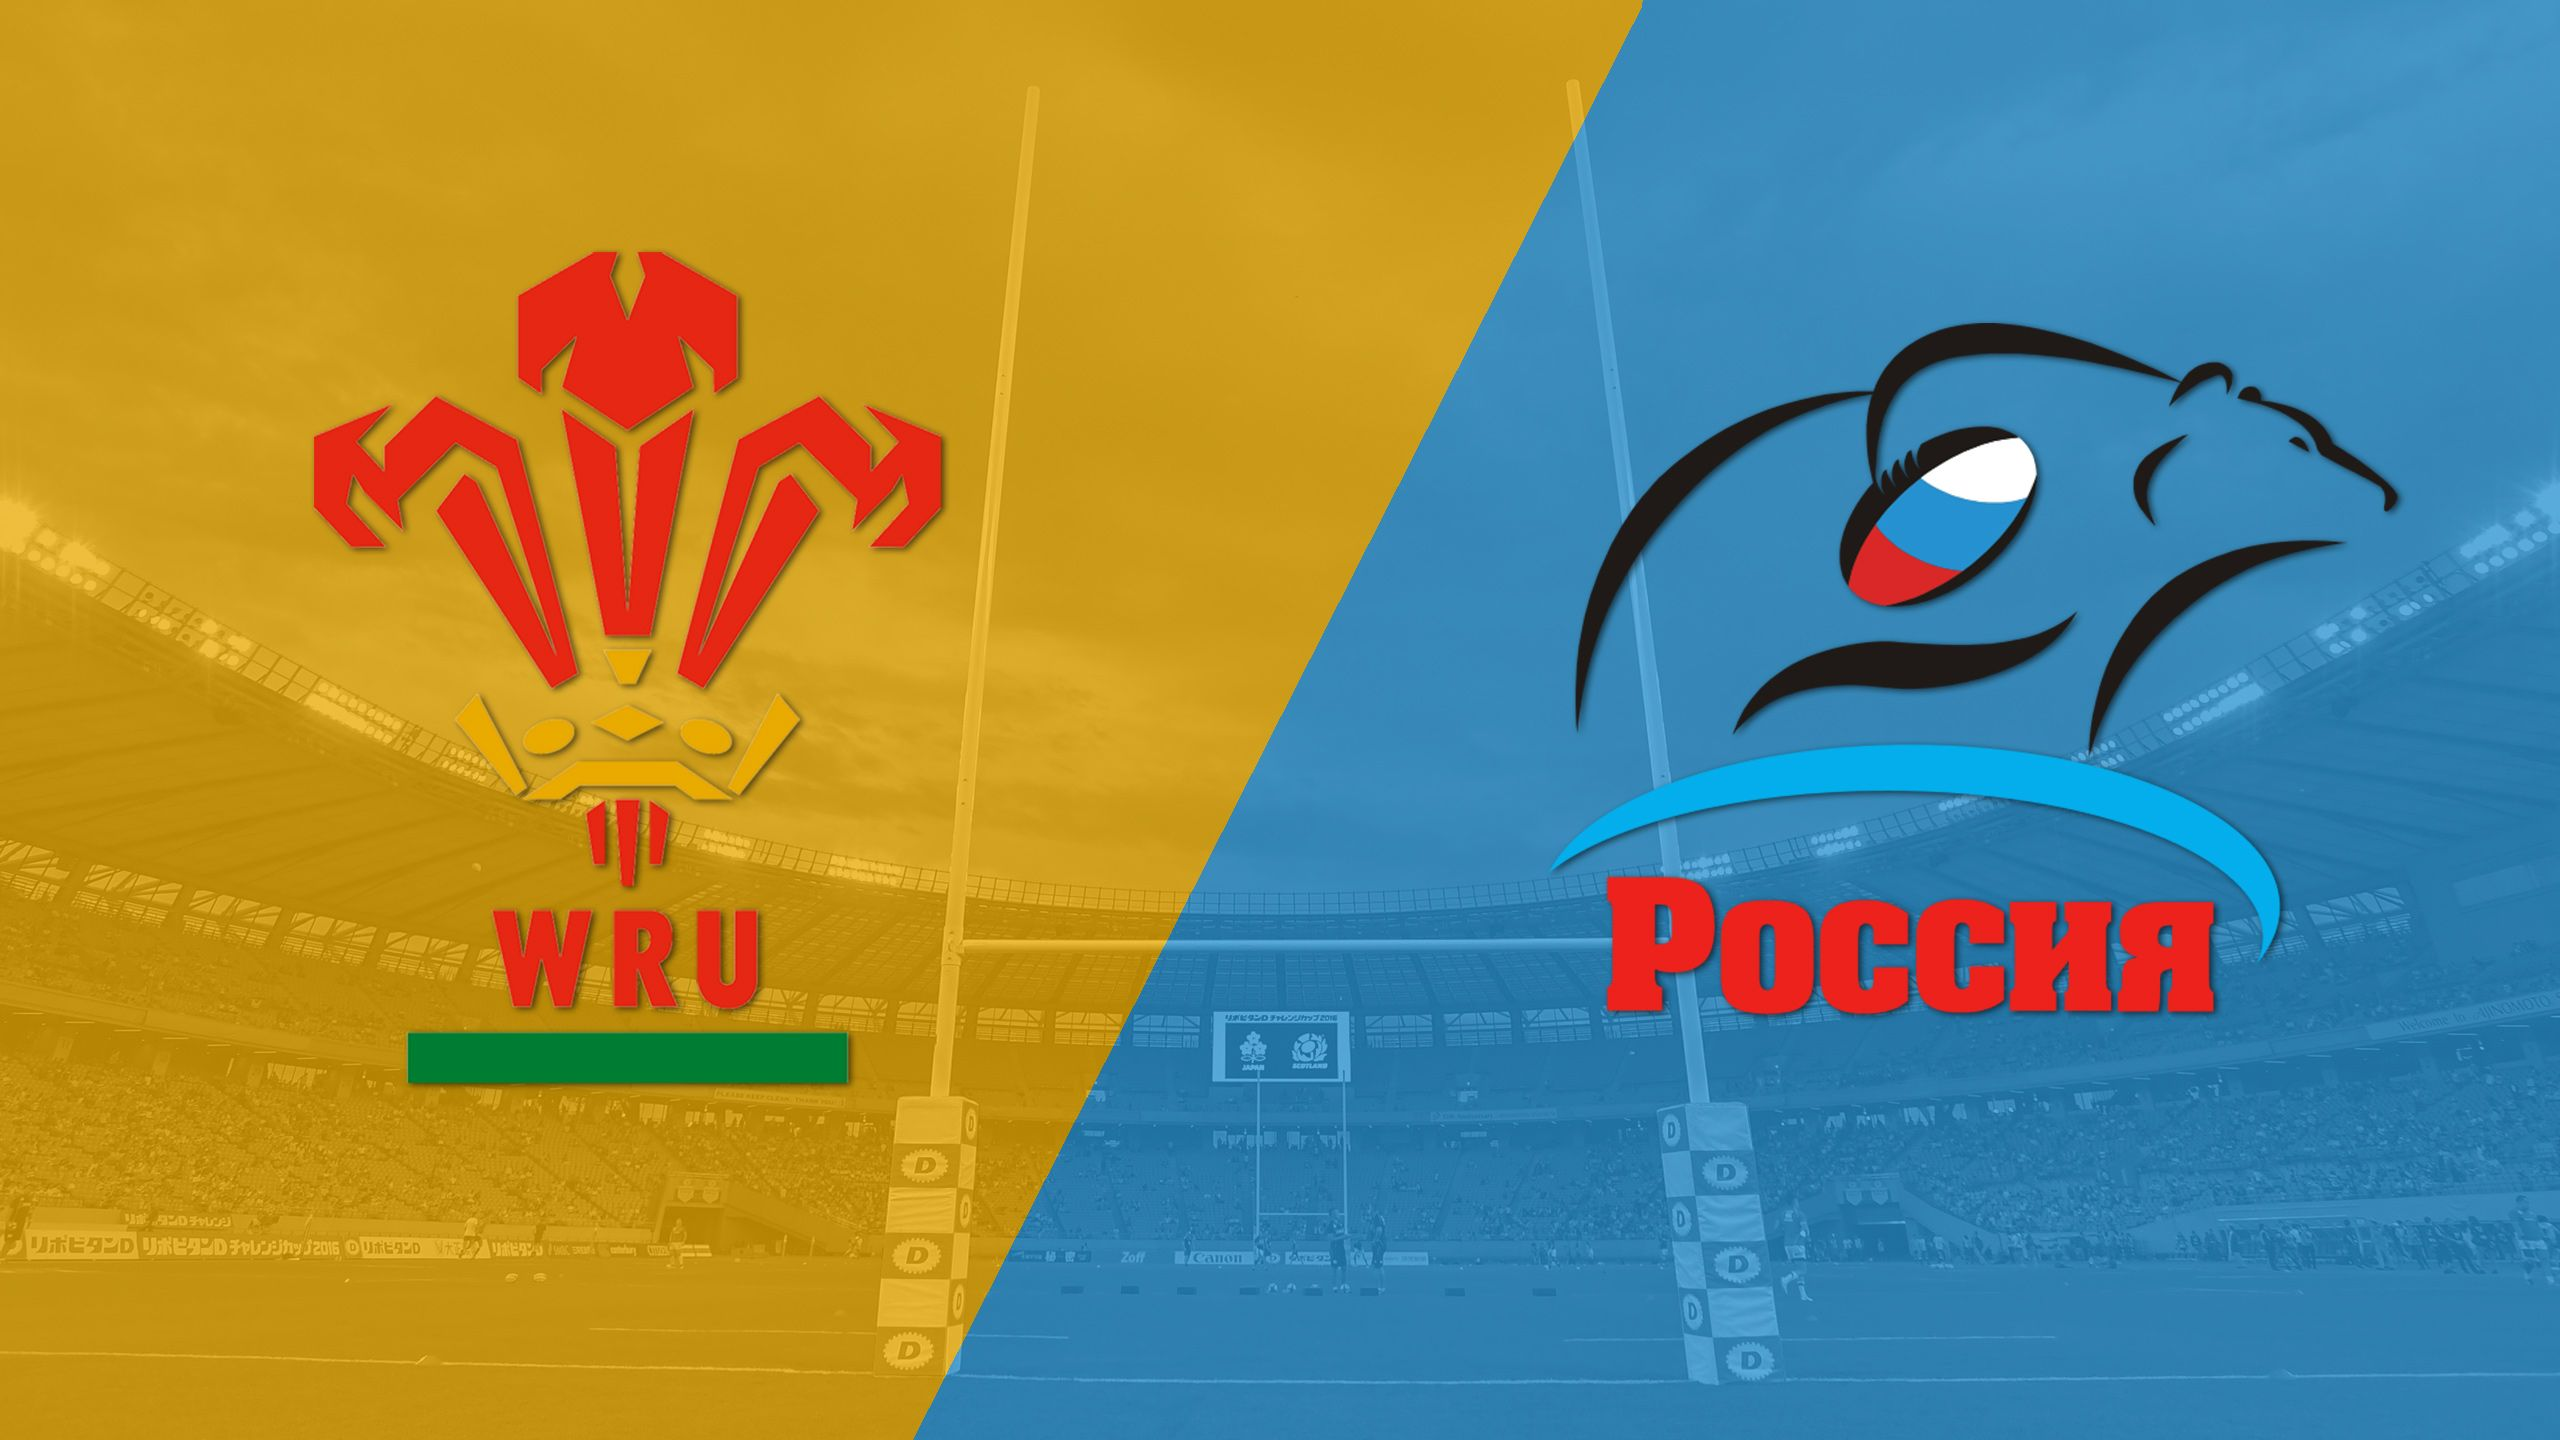 Wales vs. Russia (13th Place Semi Finals) (World Rugby Sevens Series)